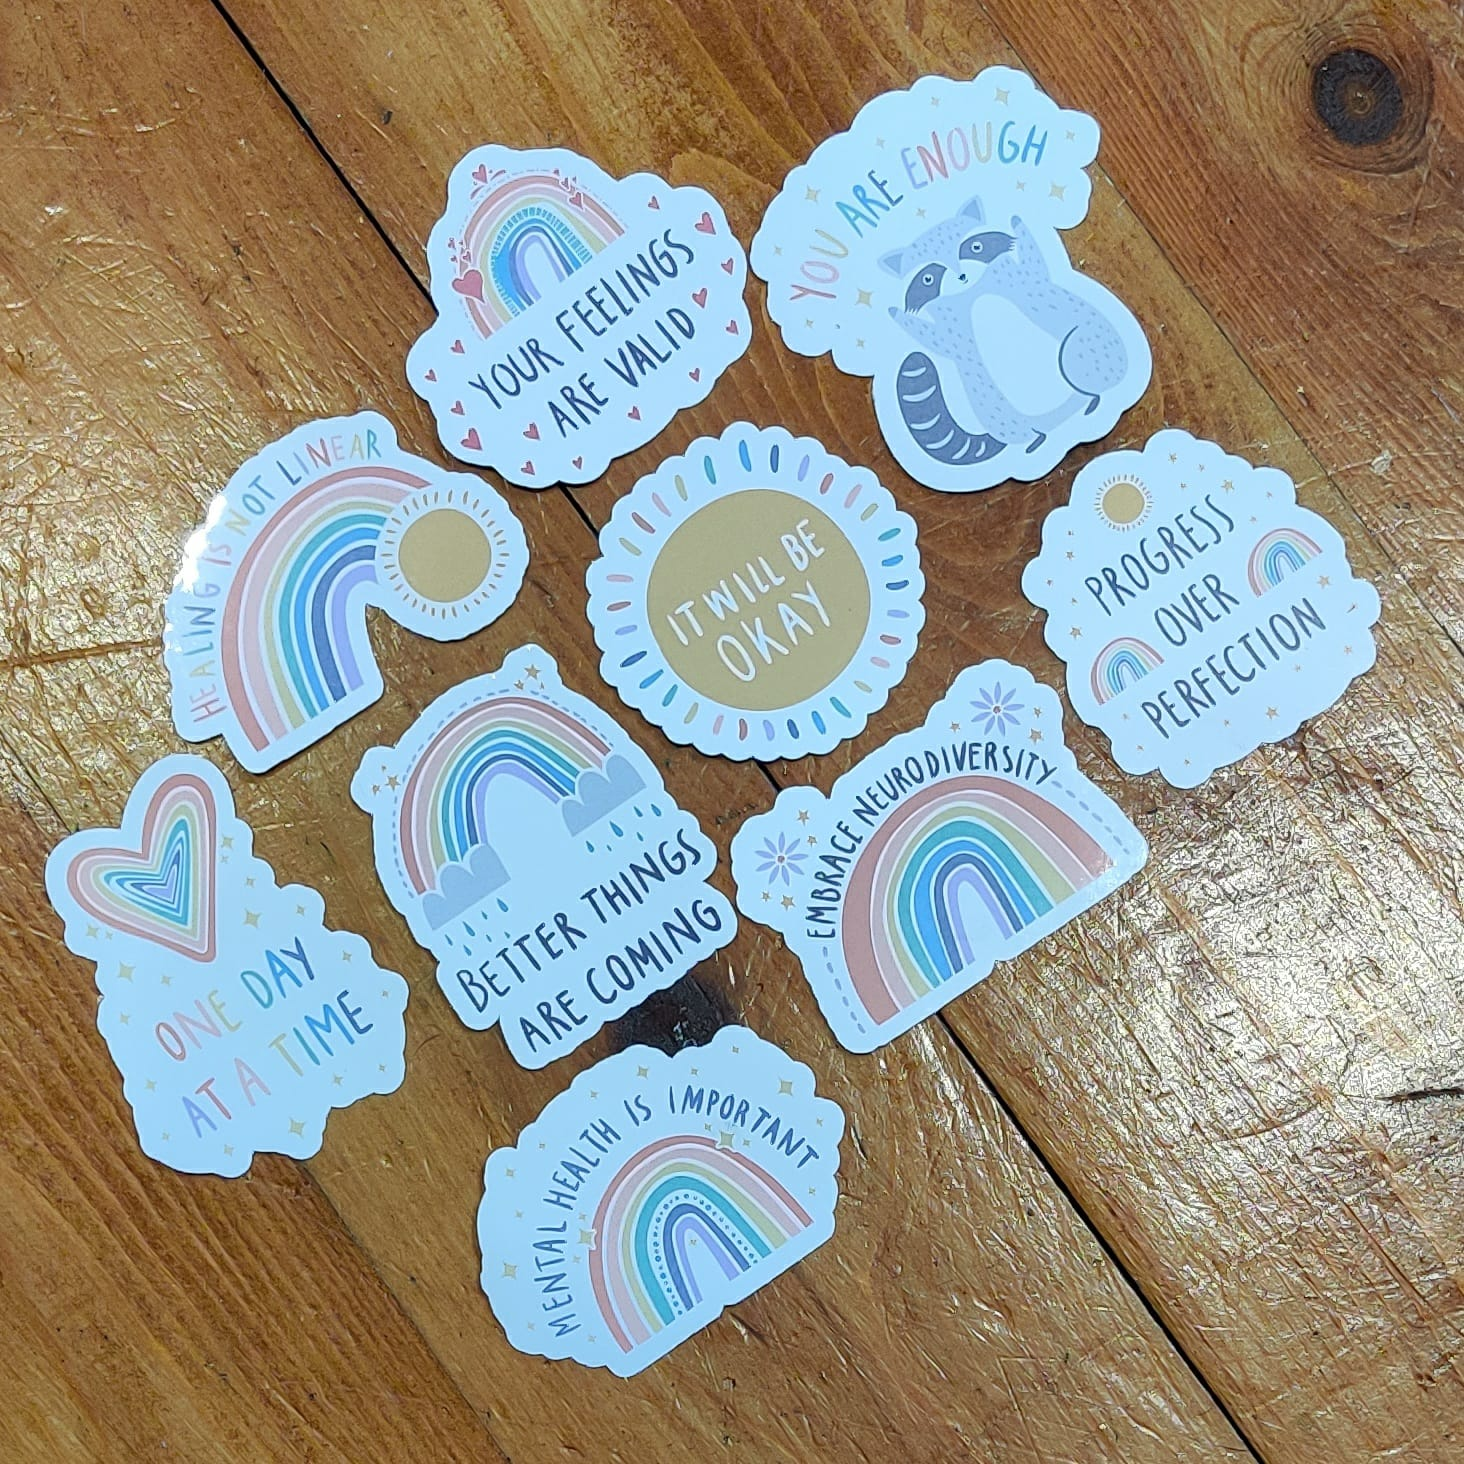 Pastel Rainbow Stickers | Mental Health Support | Positive Reminder | Encouragement | Positive Stickers | Anxiety | Charity Donation Kind Shop 2